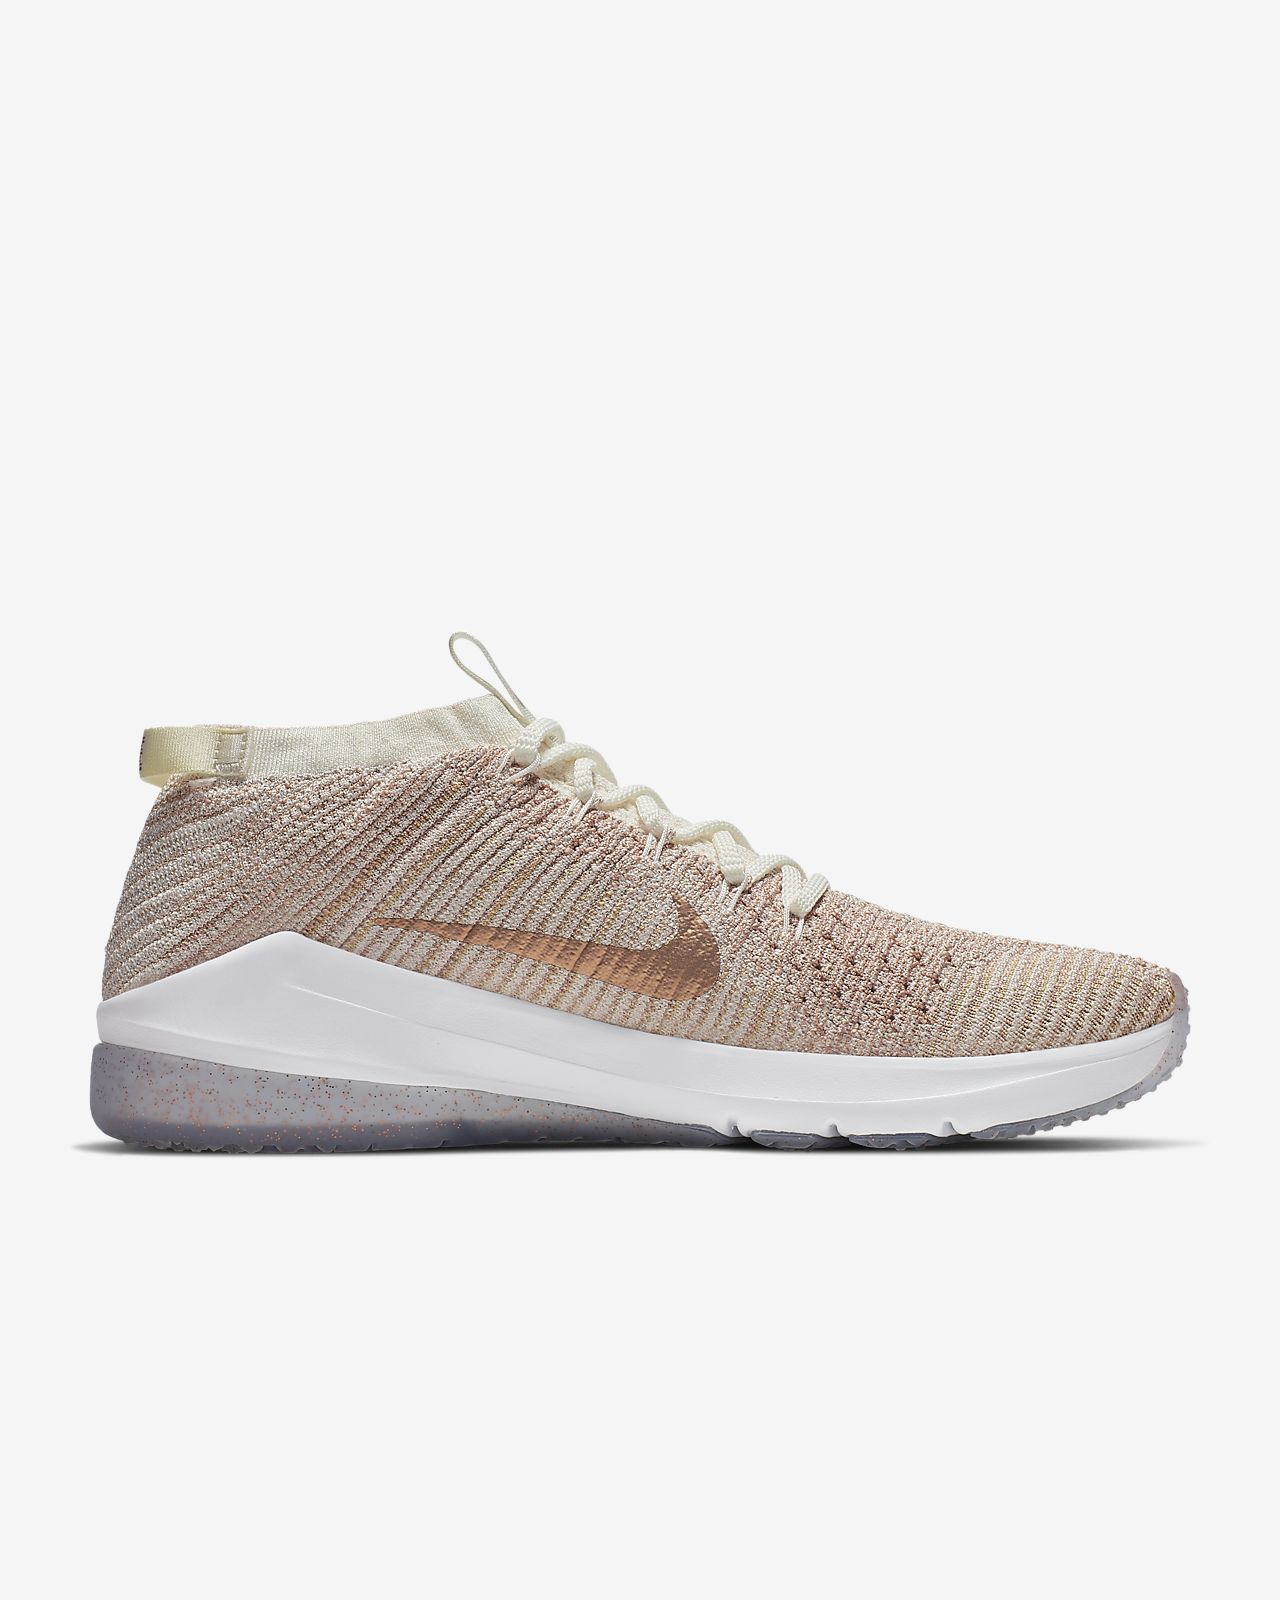 Chaussure de training Nike Air Zoom Fearless Flyknit 2 Metallic pour Femme